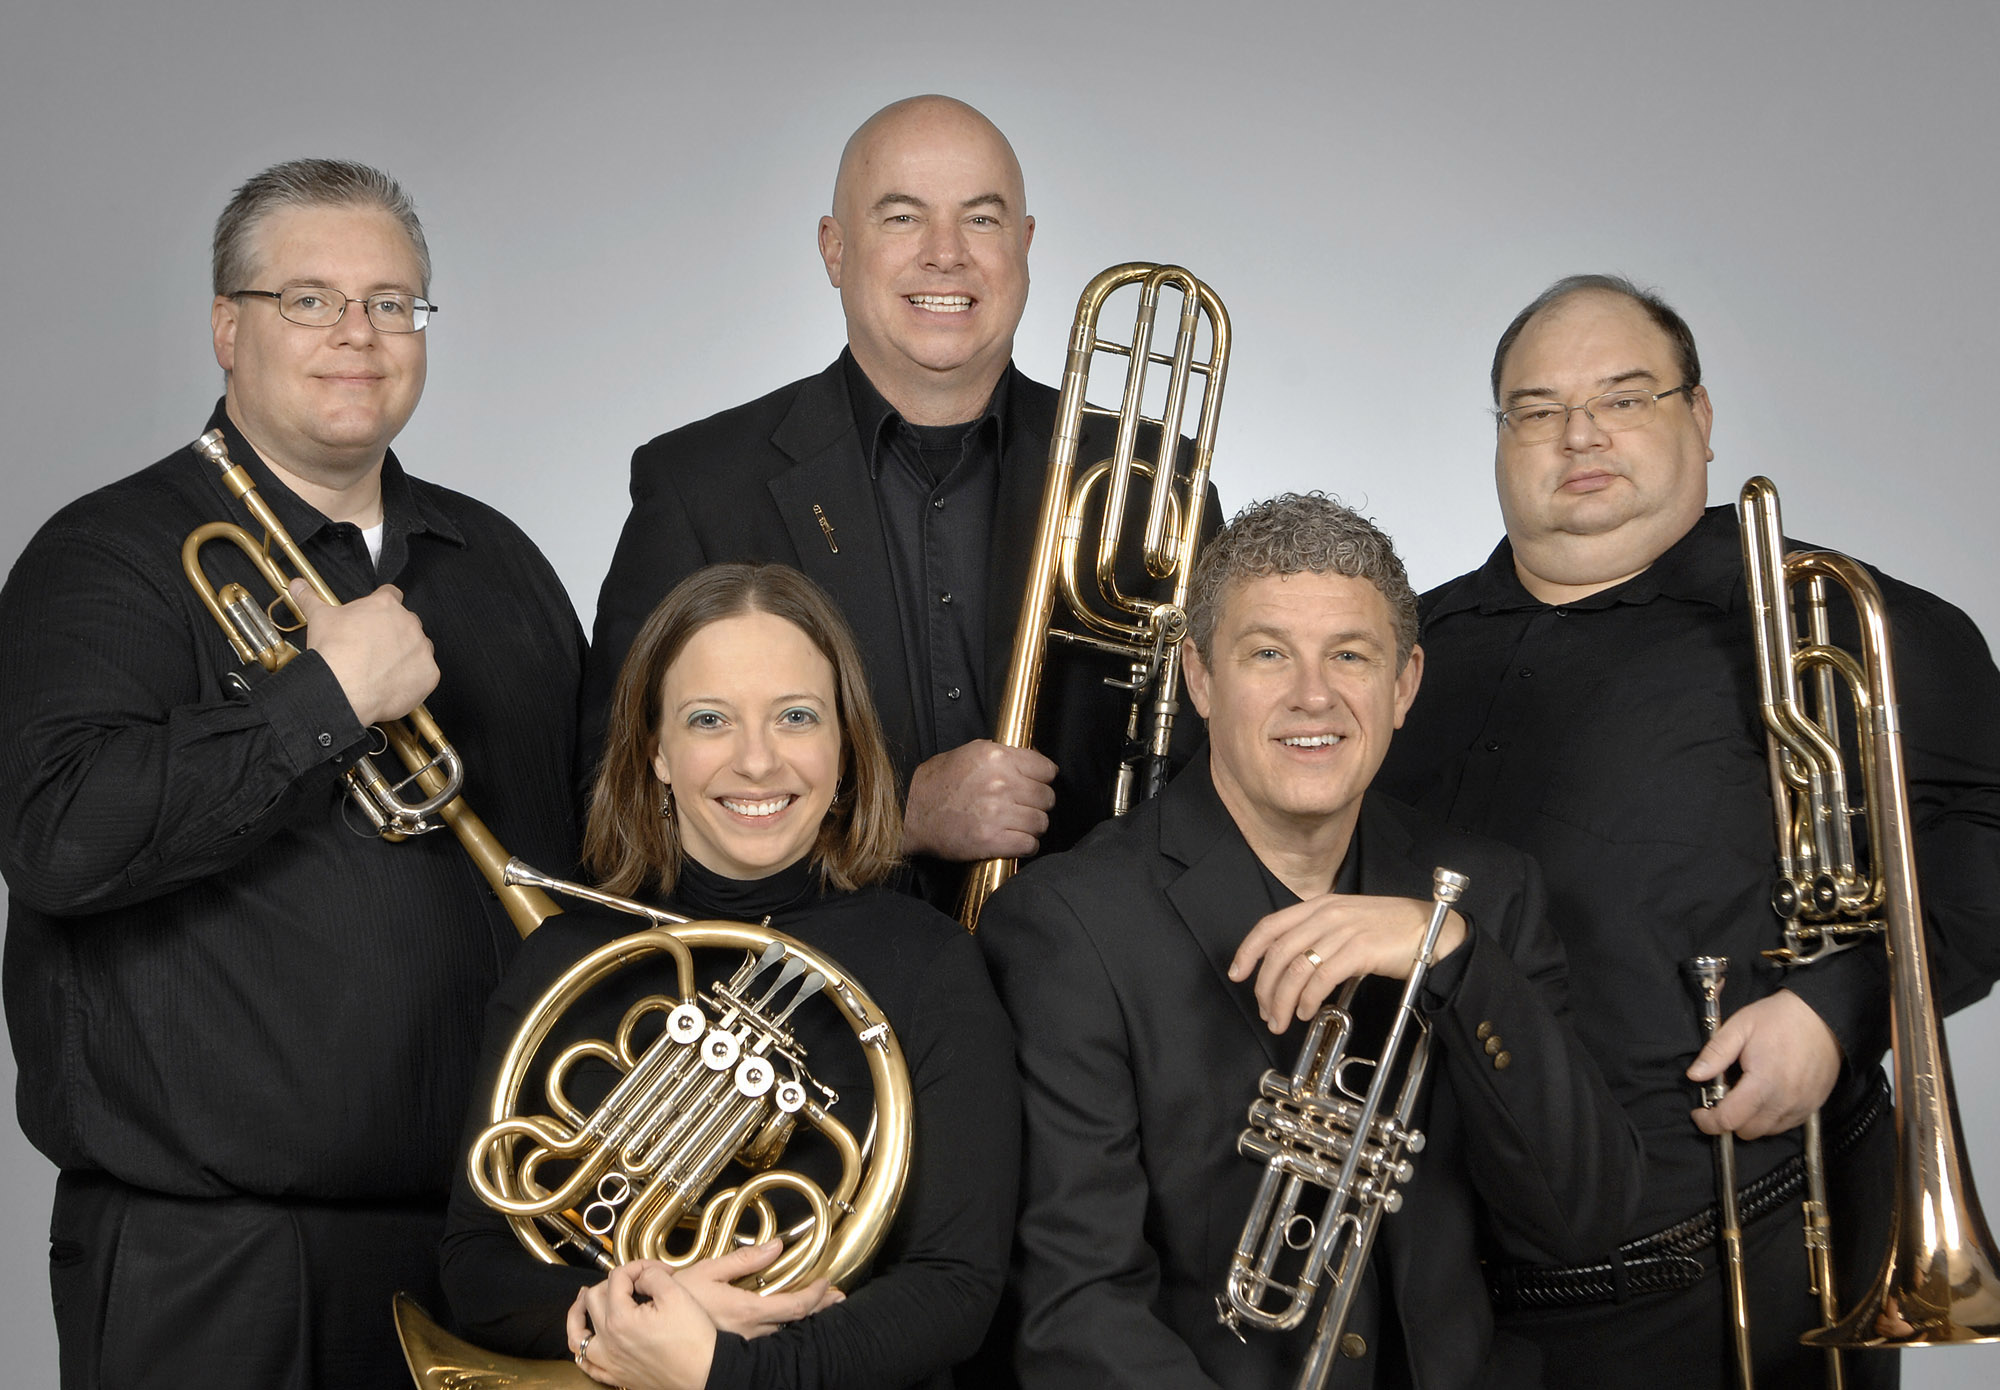 UCO presents the Red Bud Brass Ensemble in concert at 7:30 p.m. Feb. 11 at the UCO Jazz Lab, 100 E. Fifth Street in Edmond.  Pictured from left to right and front to back are Peggy Moran, D.M., Brian Lamb, D.M.A., Ryan Sharp, D.M.A., Jeff Kidwell, Wayne Clark, D.M.A.